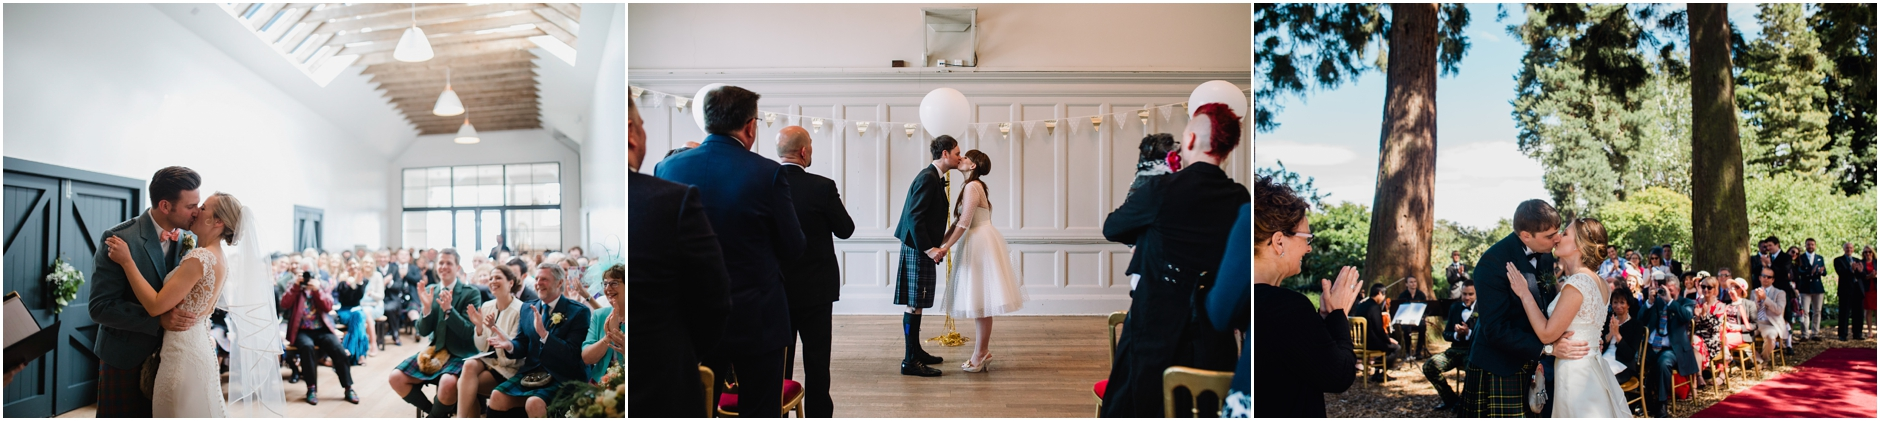 and you may kiss, photos of scottish weddings